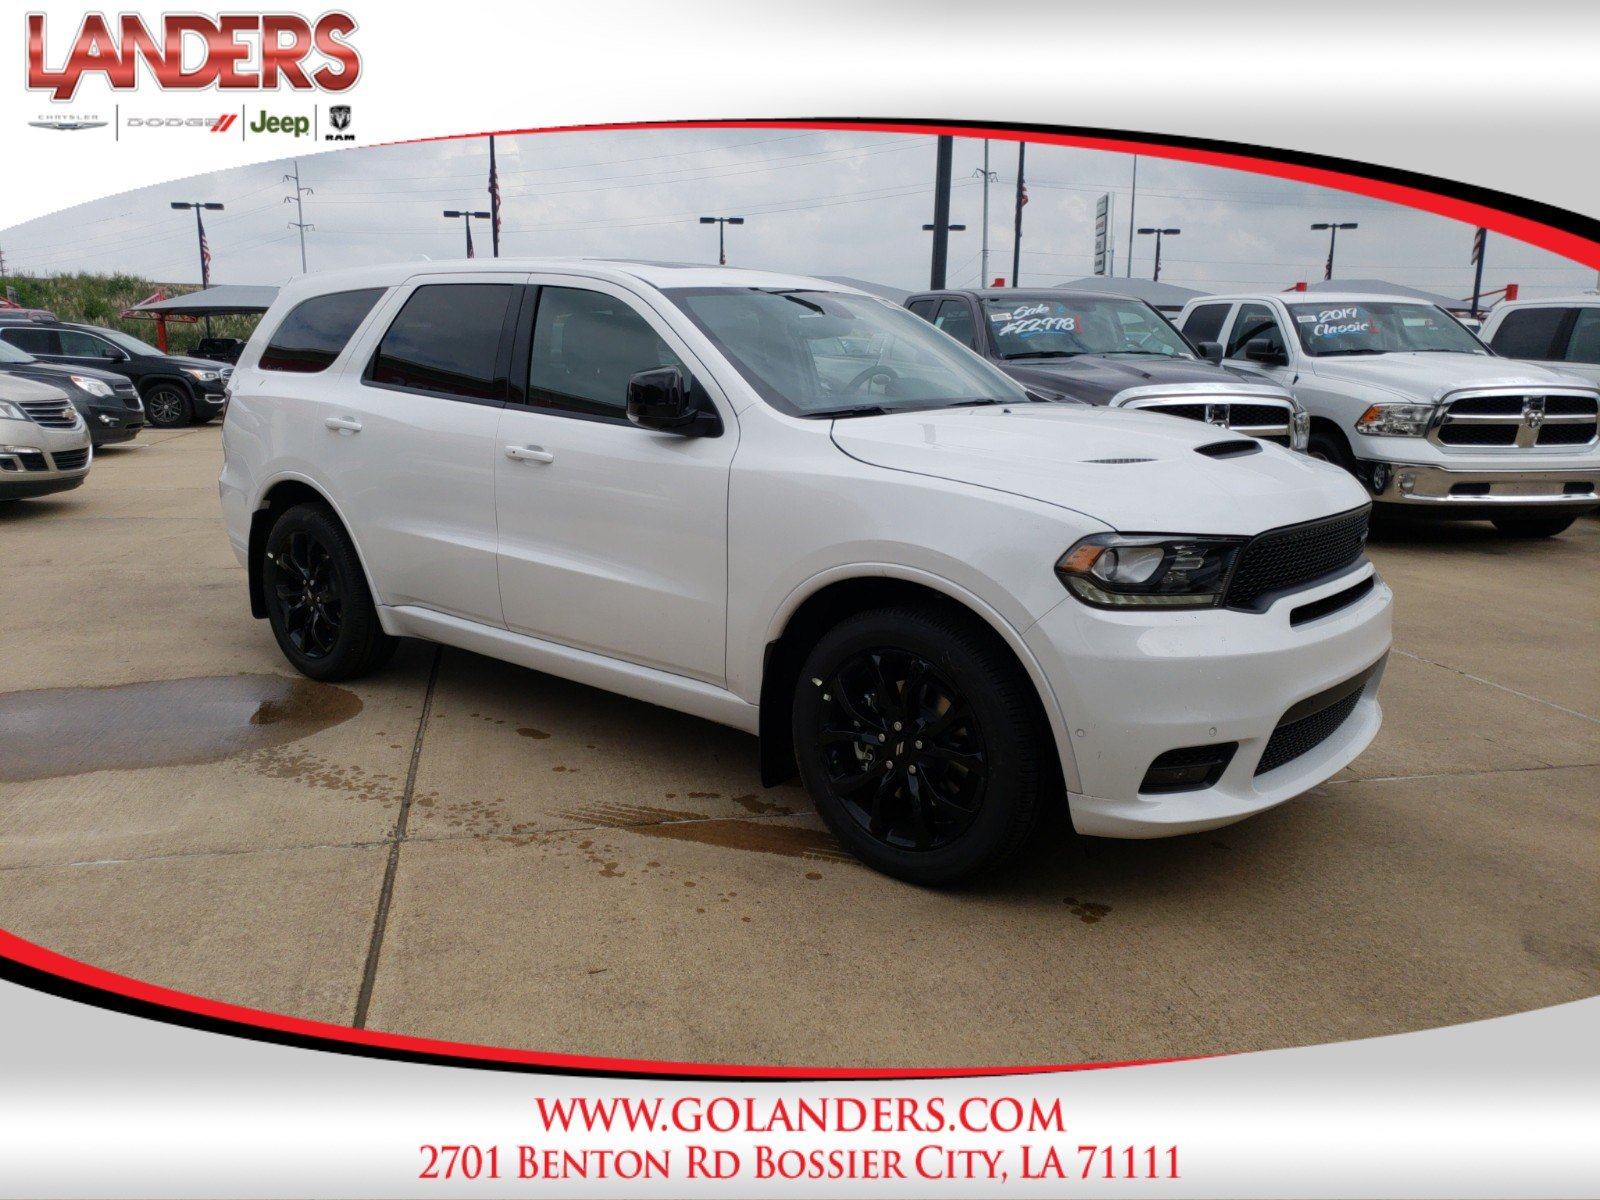 New 2019 Dodge Durango R T Sport Utility In Bossier City Kc525136 2001 Toyota 4runner Fuel Filter Location